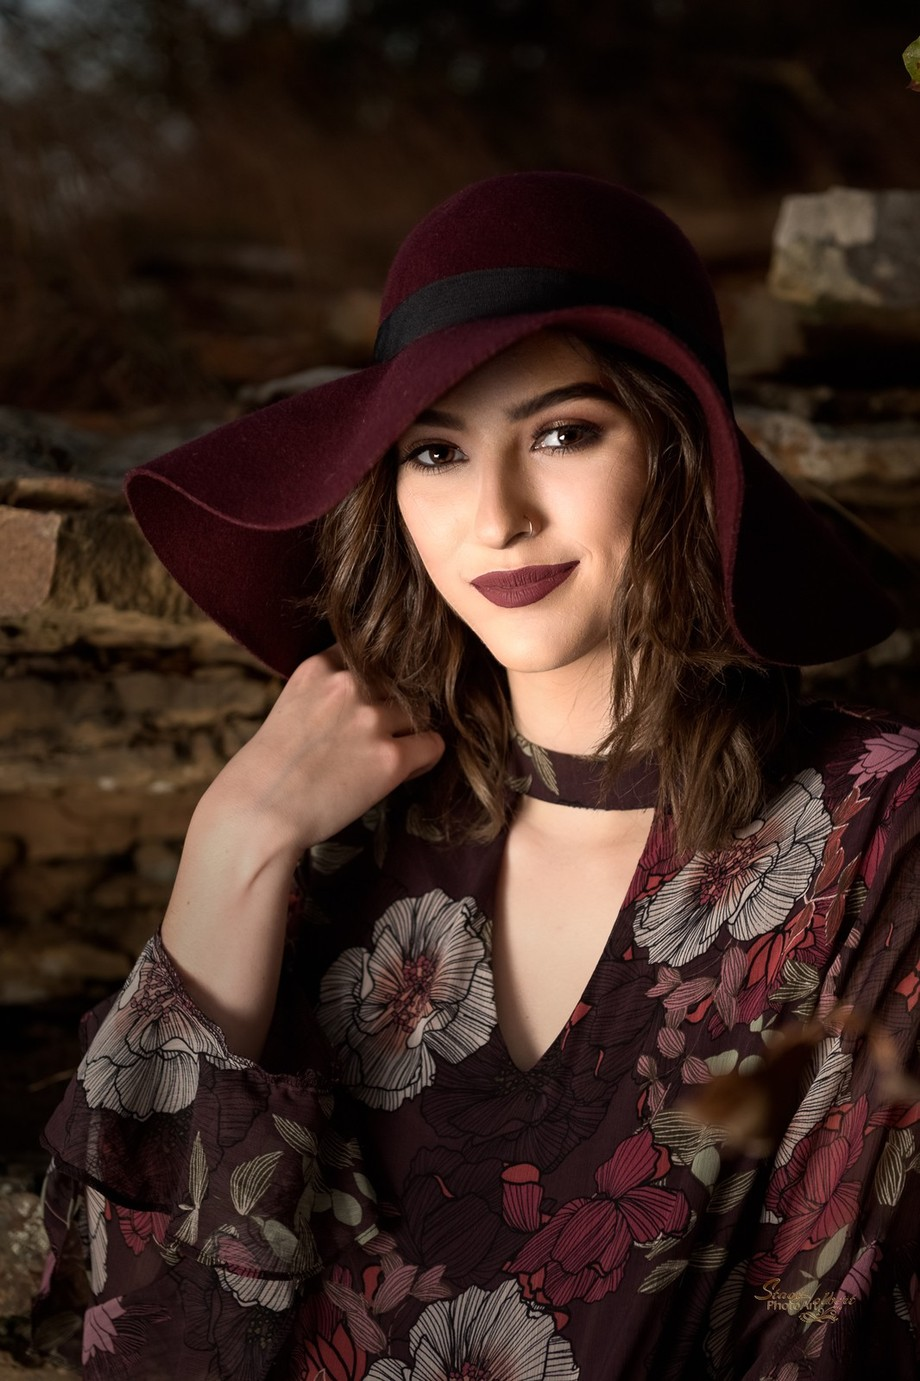 Haley w Hat - color by sjholbert - Elegant Moments Photo Contest